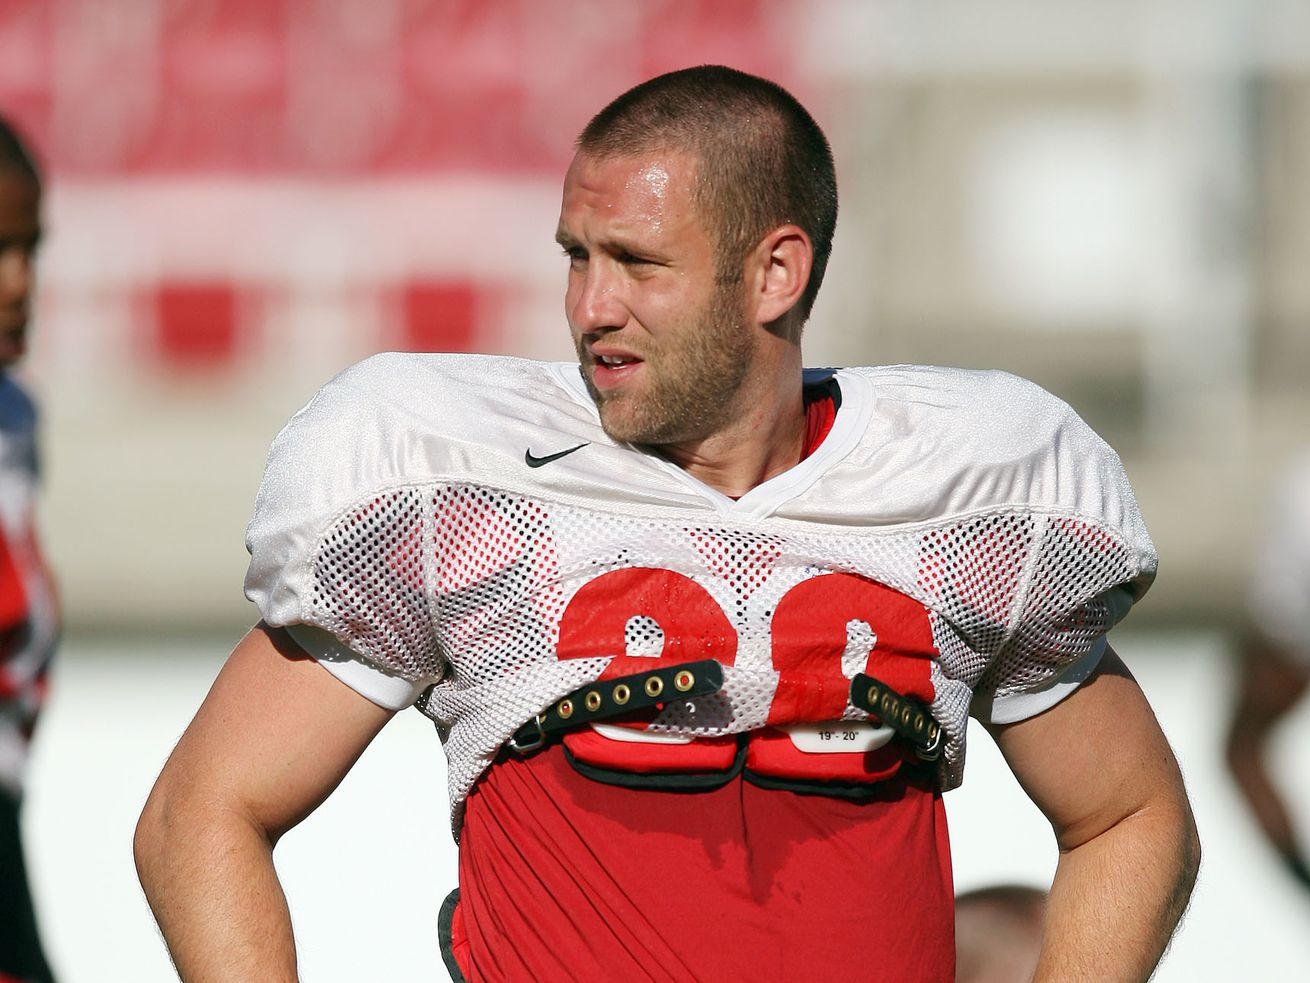 University of Utah football player Steve Tate rests during a scrimmage at Rice Stadium in Salt Lake City Aug 10, 2007.